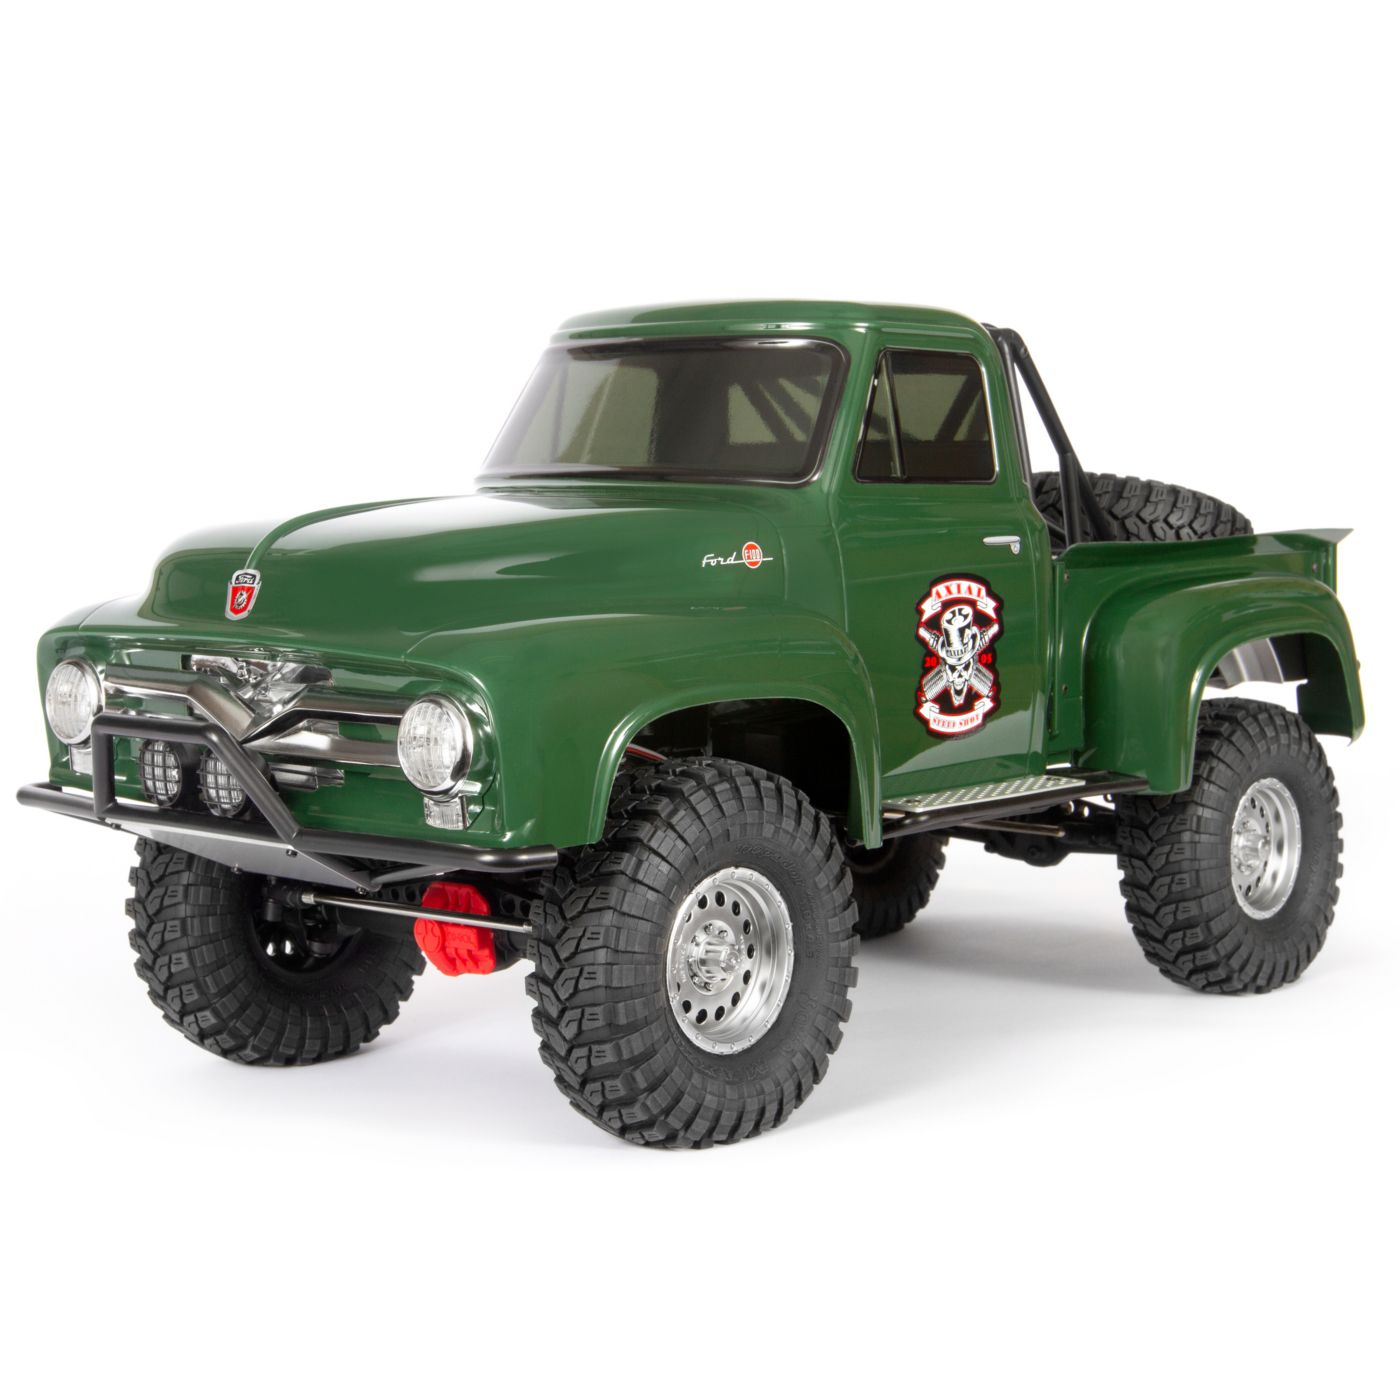 Axial Scx 10 II rtr Scaler Ford F-100 4wd 01